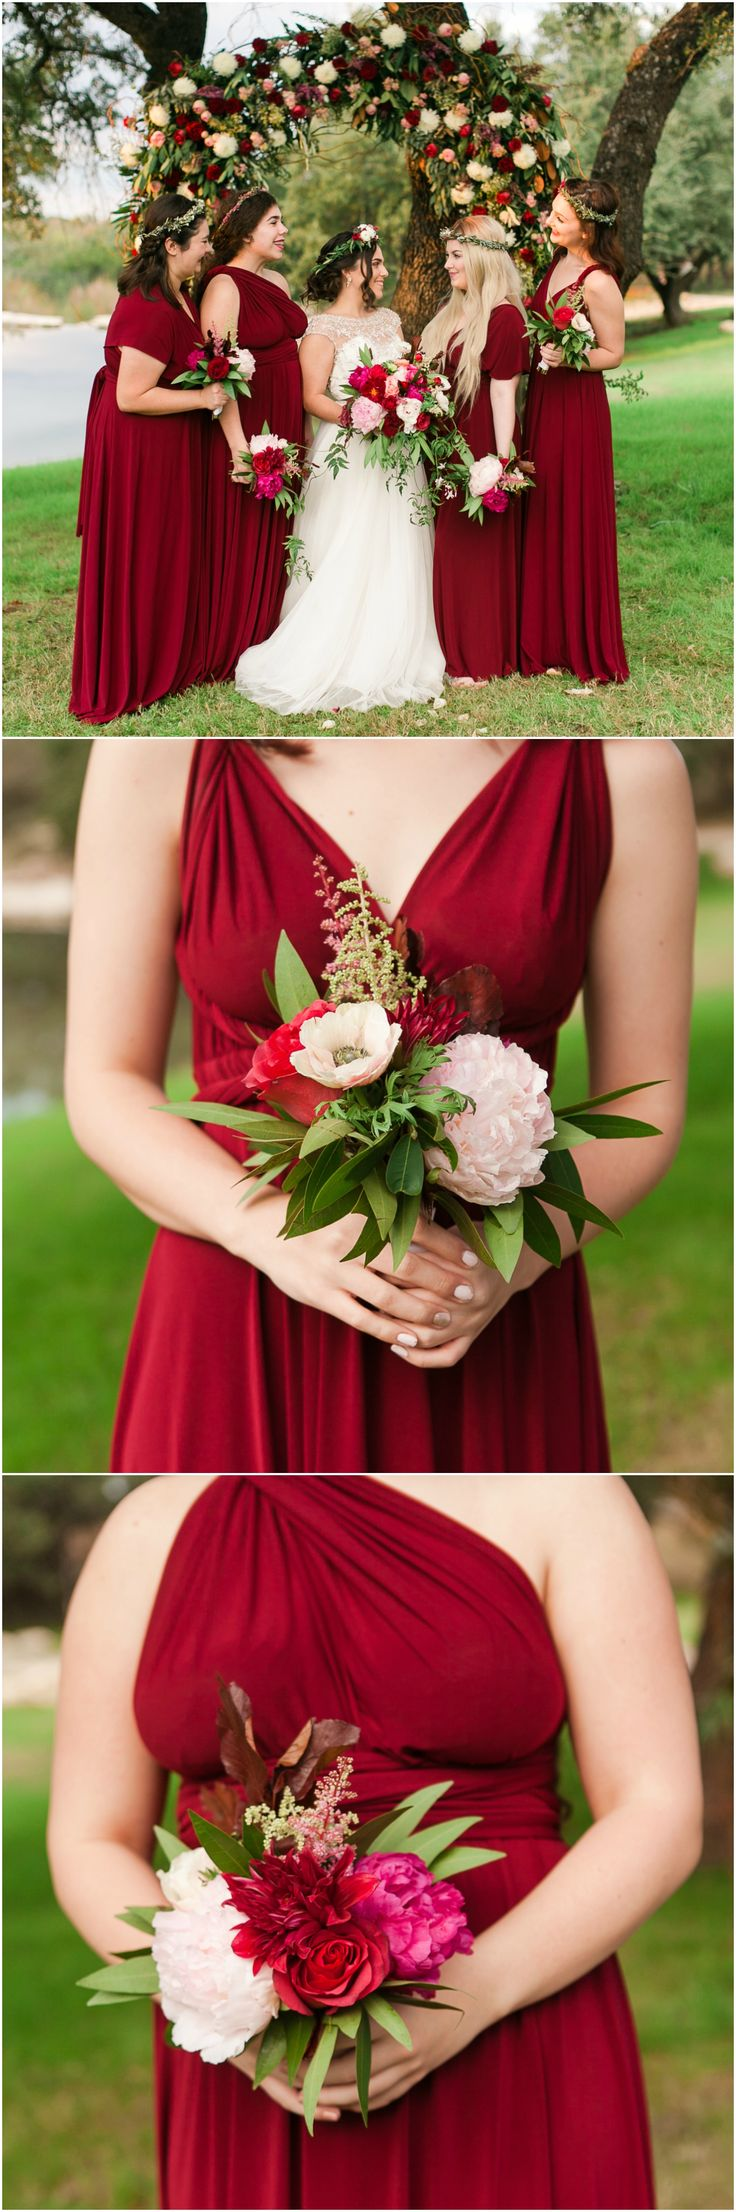 Best 25 red bridesmaid dresses ideas on pinterest red burgundy red bridesmaid dresses mismatched necklines deep scarlet peony and dahlia bouquets ombrellifo Choice Image